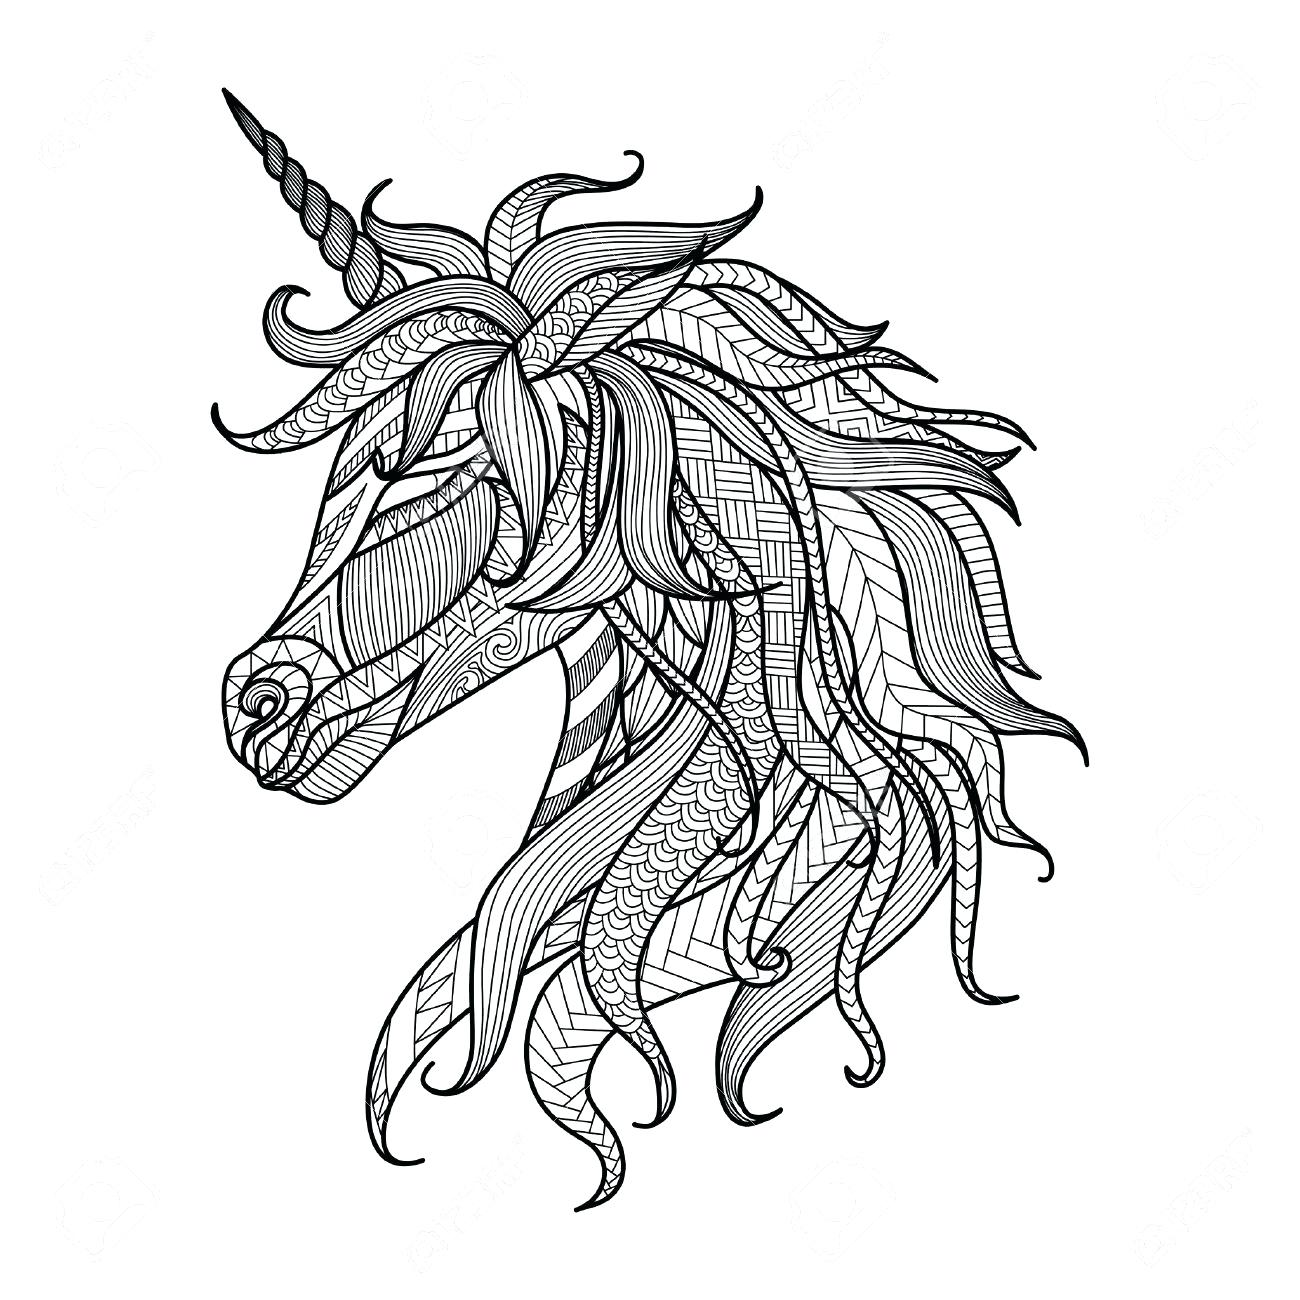 Flying Unicorn Drawing at GetDrawings.com | Free for personal use ...